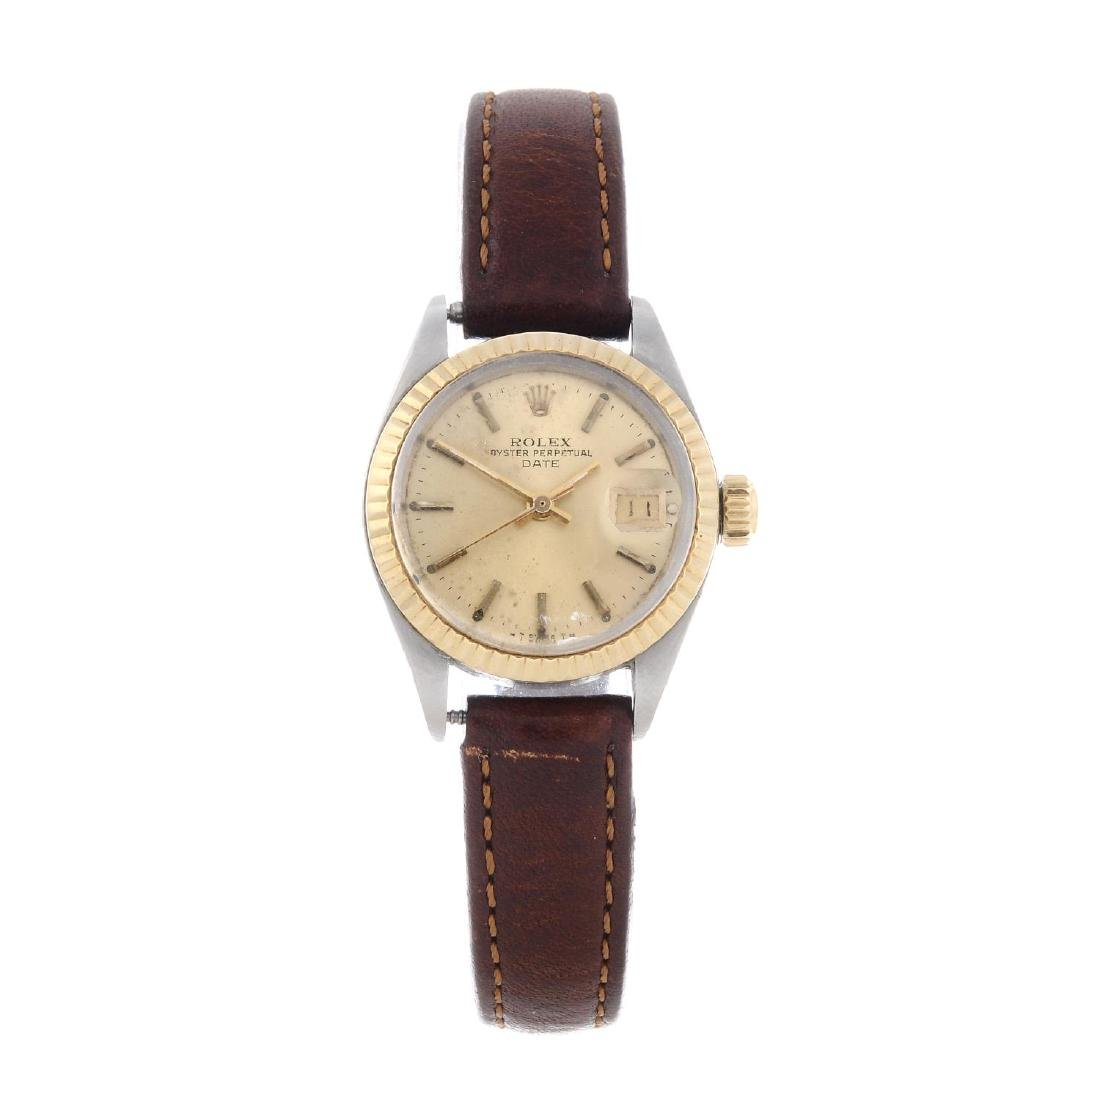 ROLEX - a lady's Oyster Perpetual Date wrist watch.